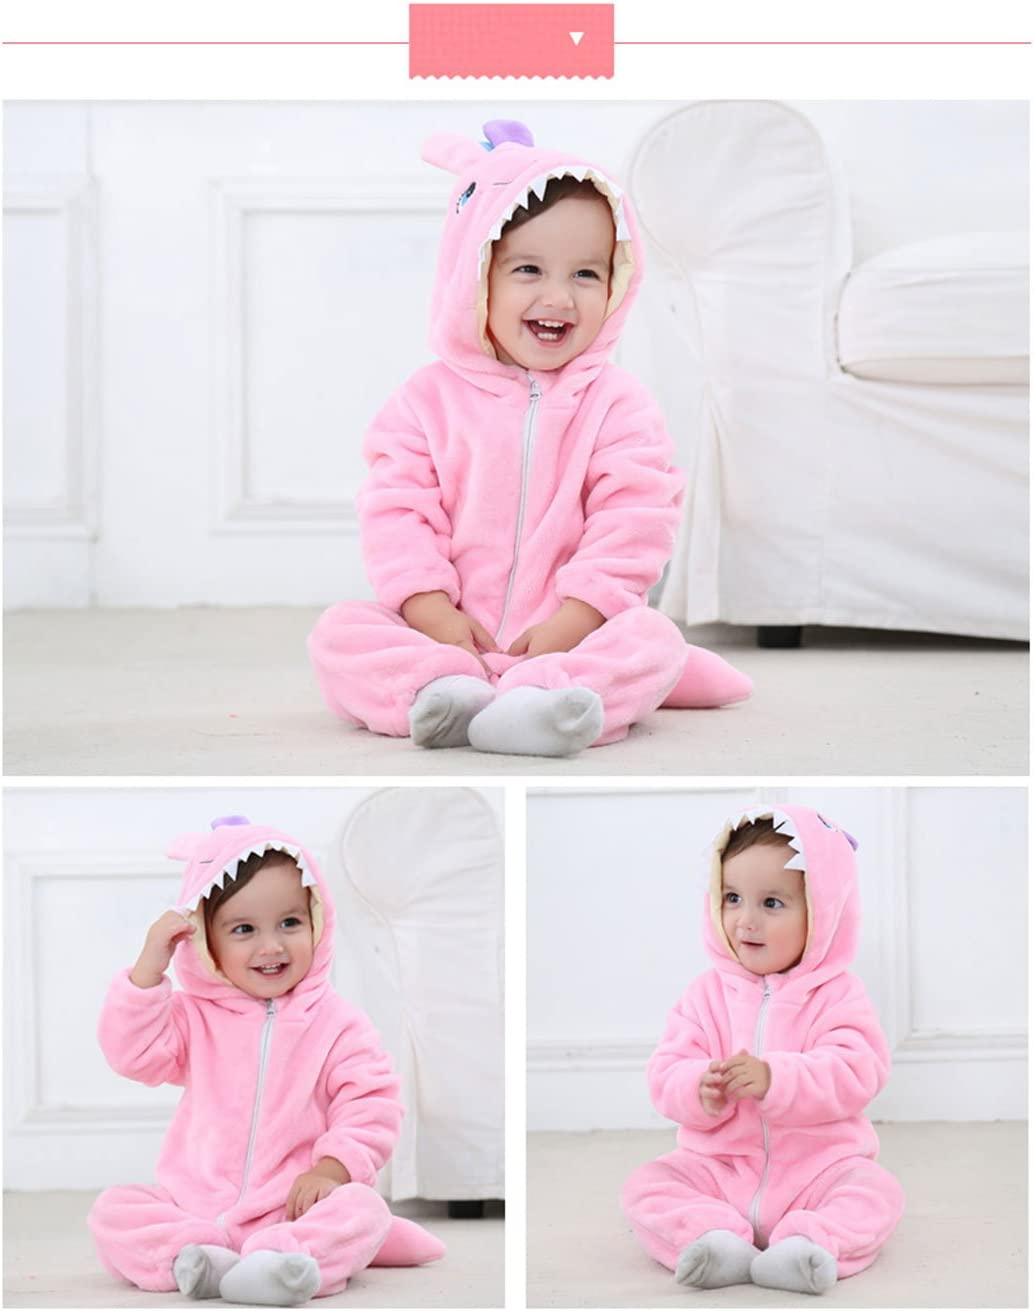 Amazemarket 0-5 Years Baby Infant Jumpsuit Set Hooded Romper Super Cute Animals Design Soft Flannel Toddler Climb Clothes Kids Casual Christmas Costumes 70 cm, Leopard